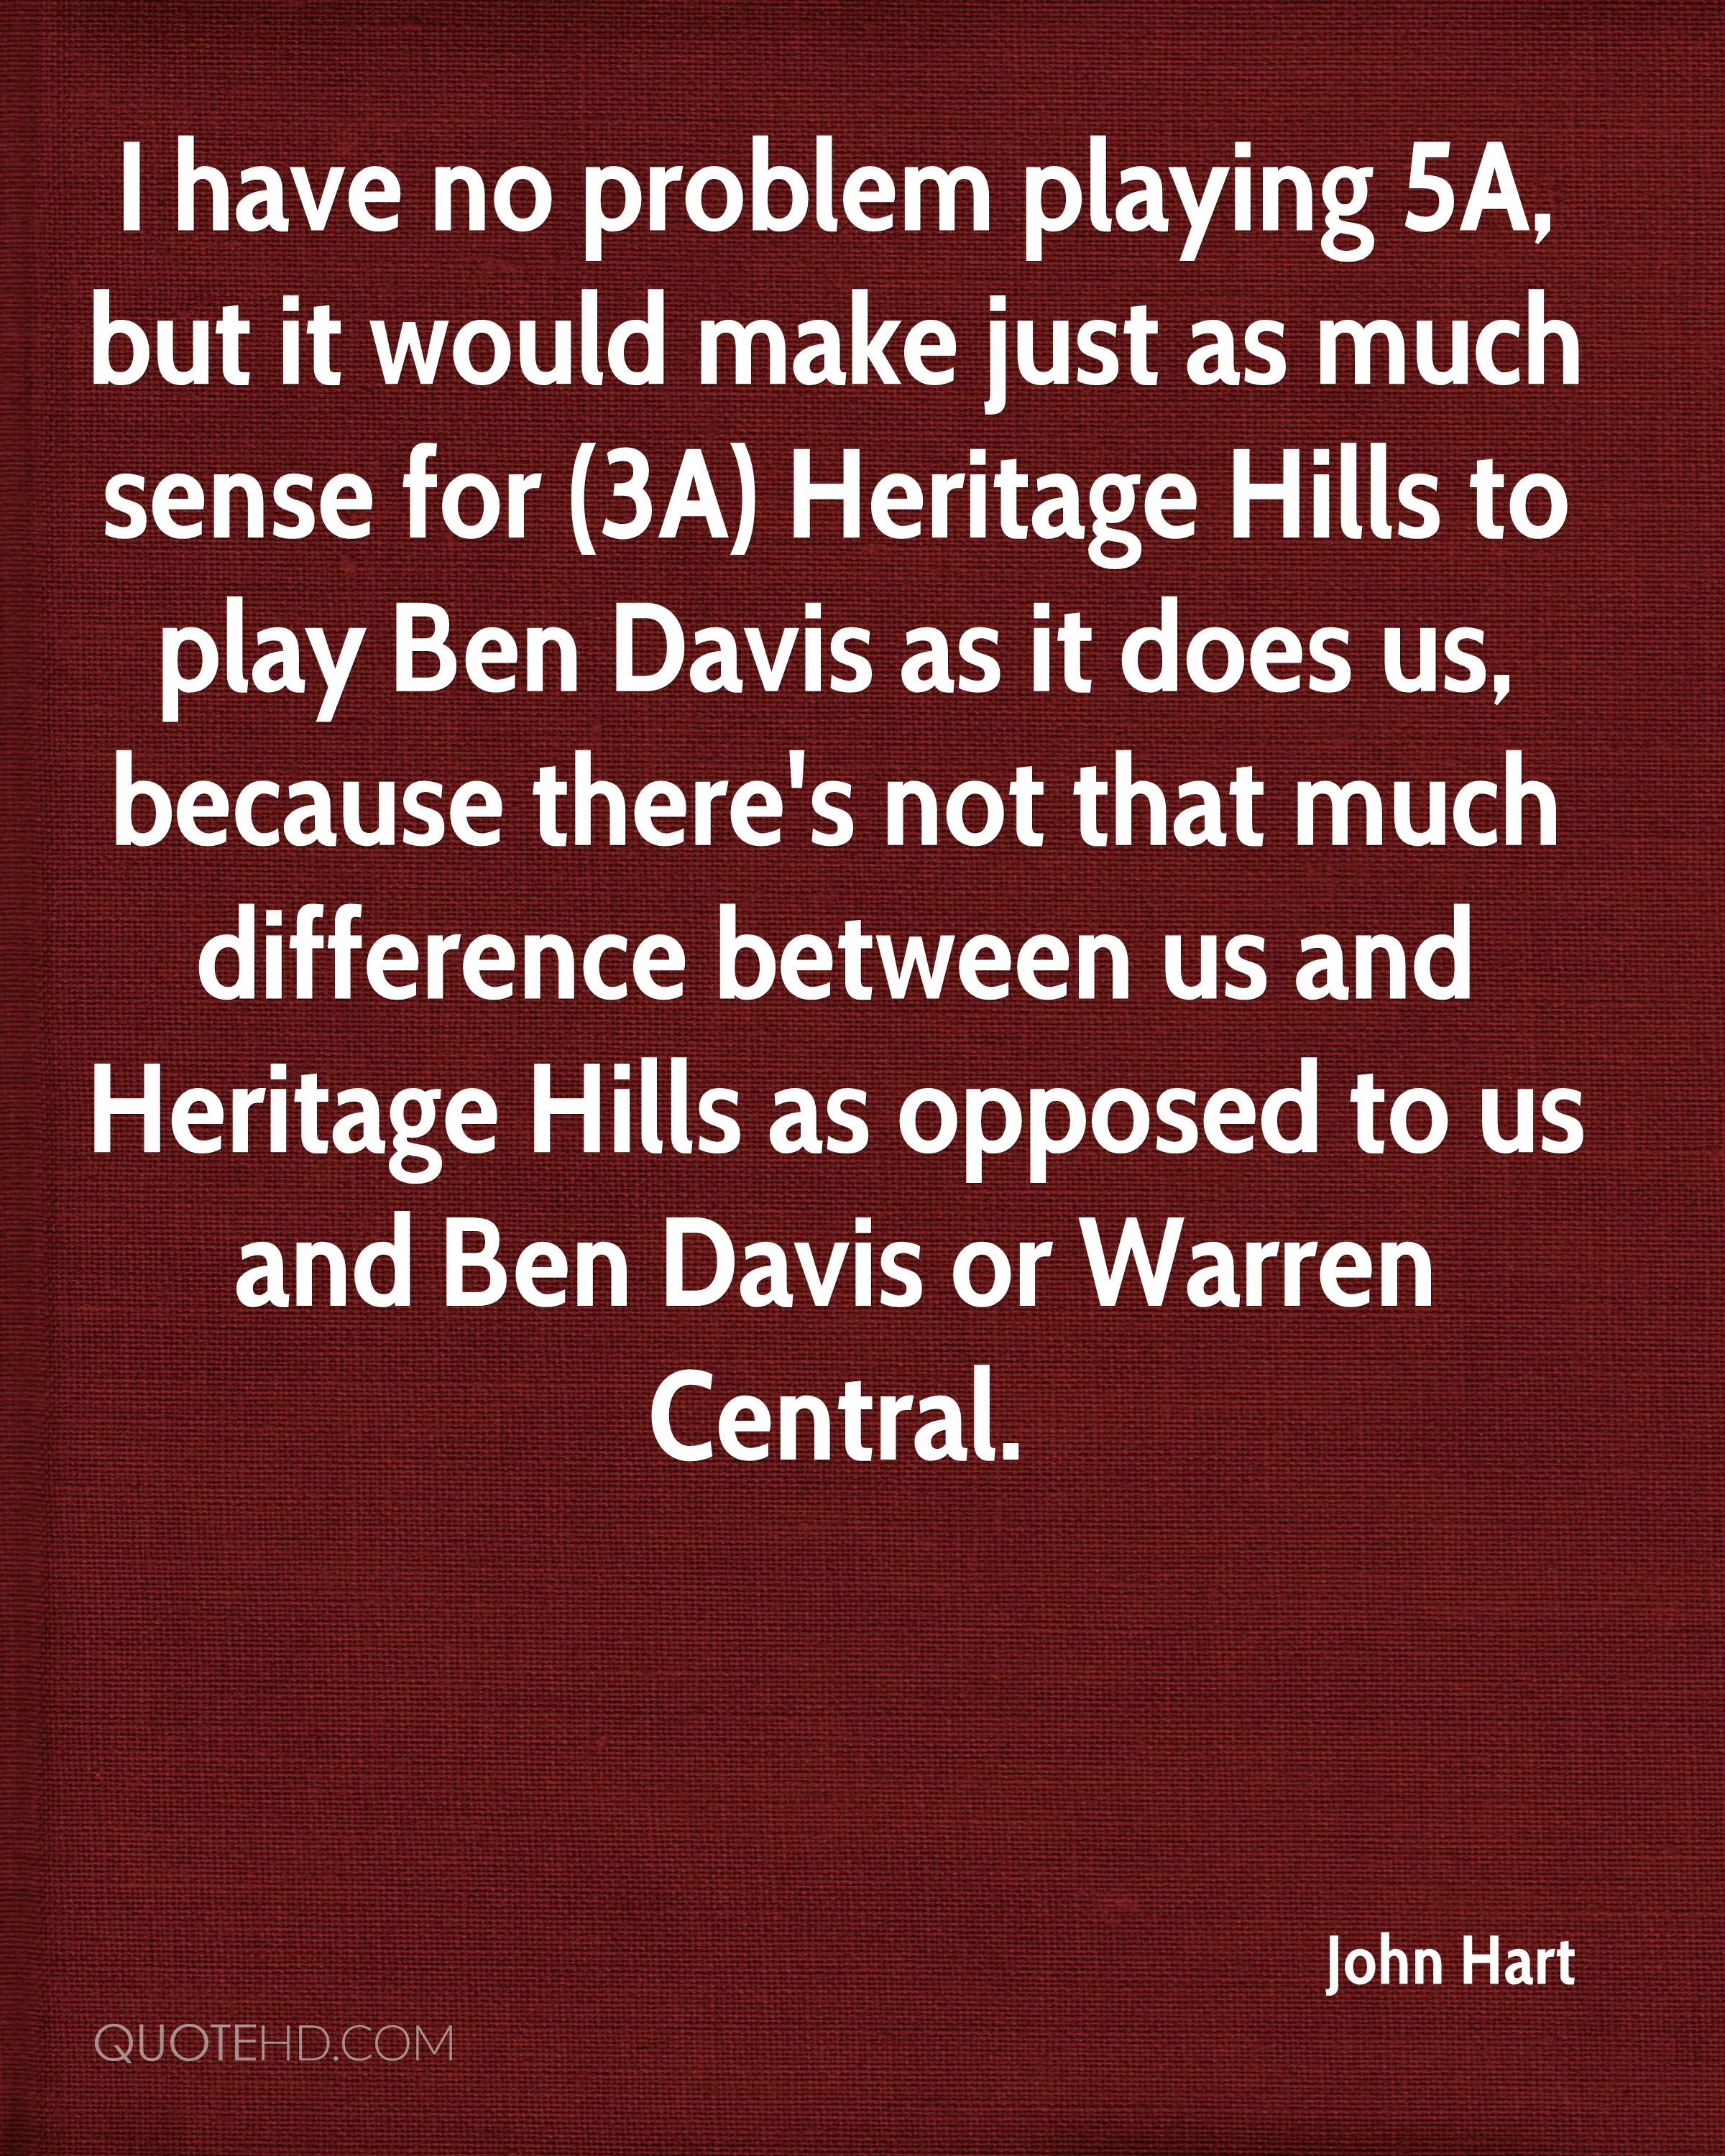 I have no problem playing 5A, but it would make just as much sense for (3A) Heritage Hills to play Ben Davis as it does us, because there's not that much difference between us and Heritage Hills as opposed to us and Ben Davis or Warren Central.